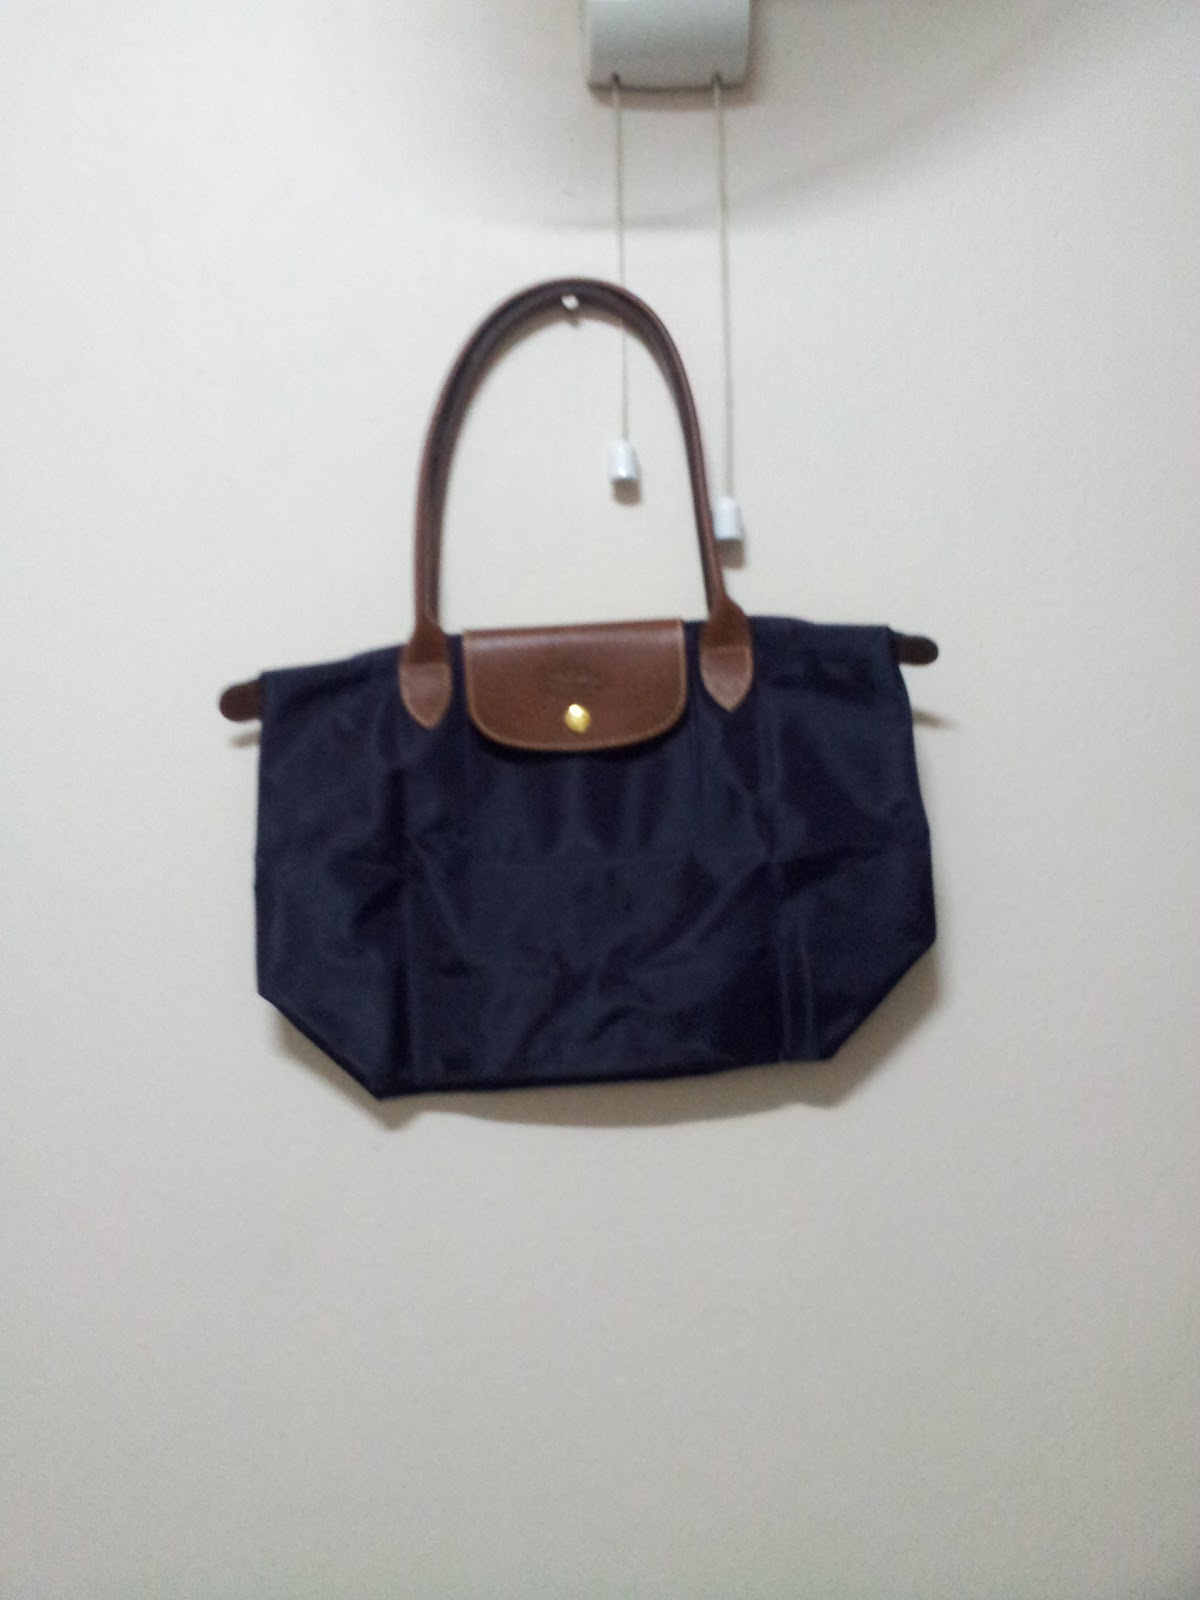 Original Price Bag 2020 Longchamp MalaysiaArisia fgYyb76v